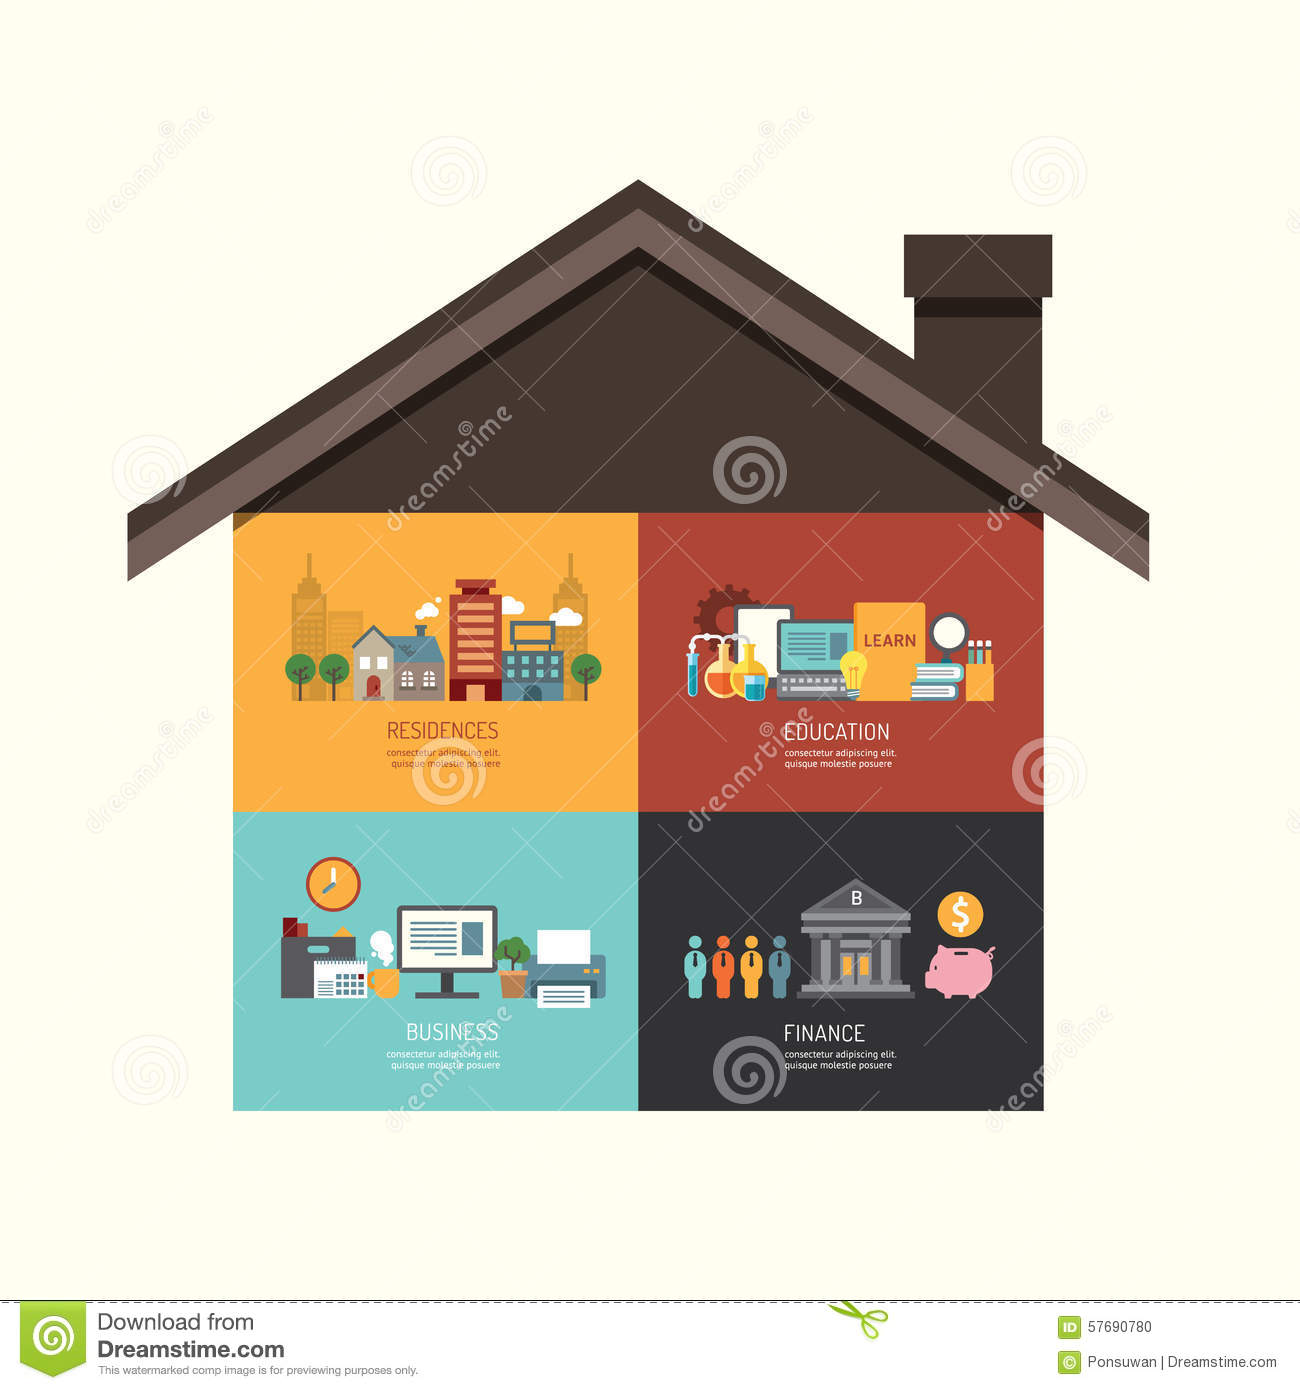 Business investment concept infographic building house for Building a dog kennel business